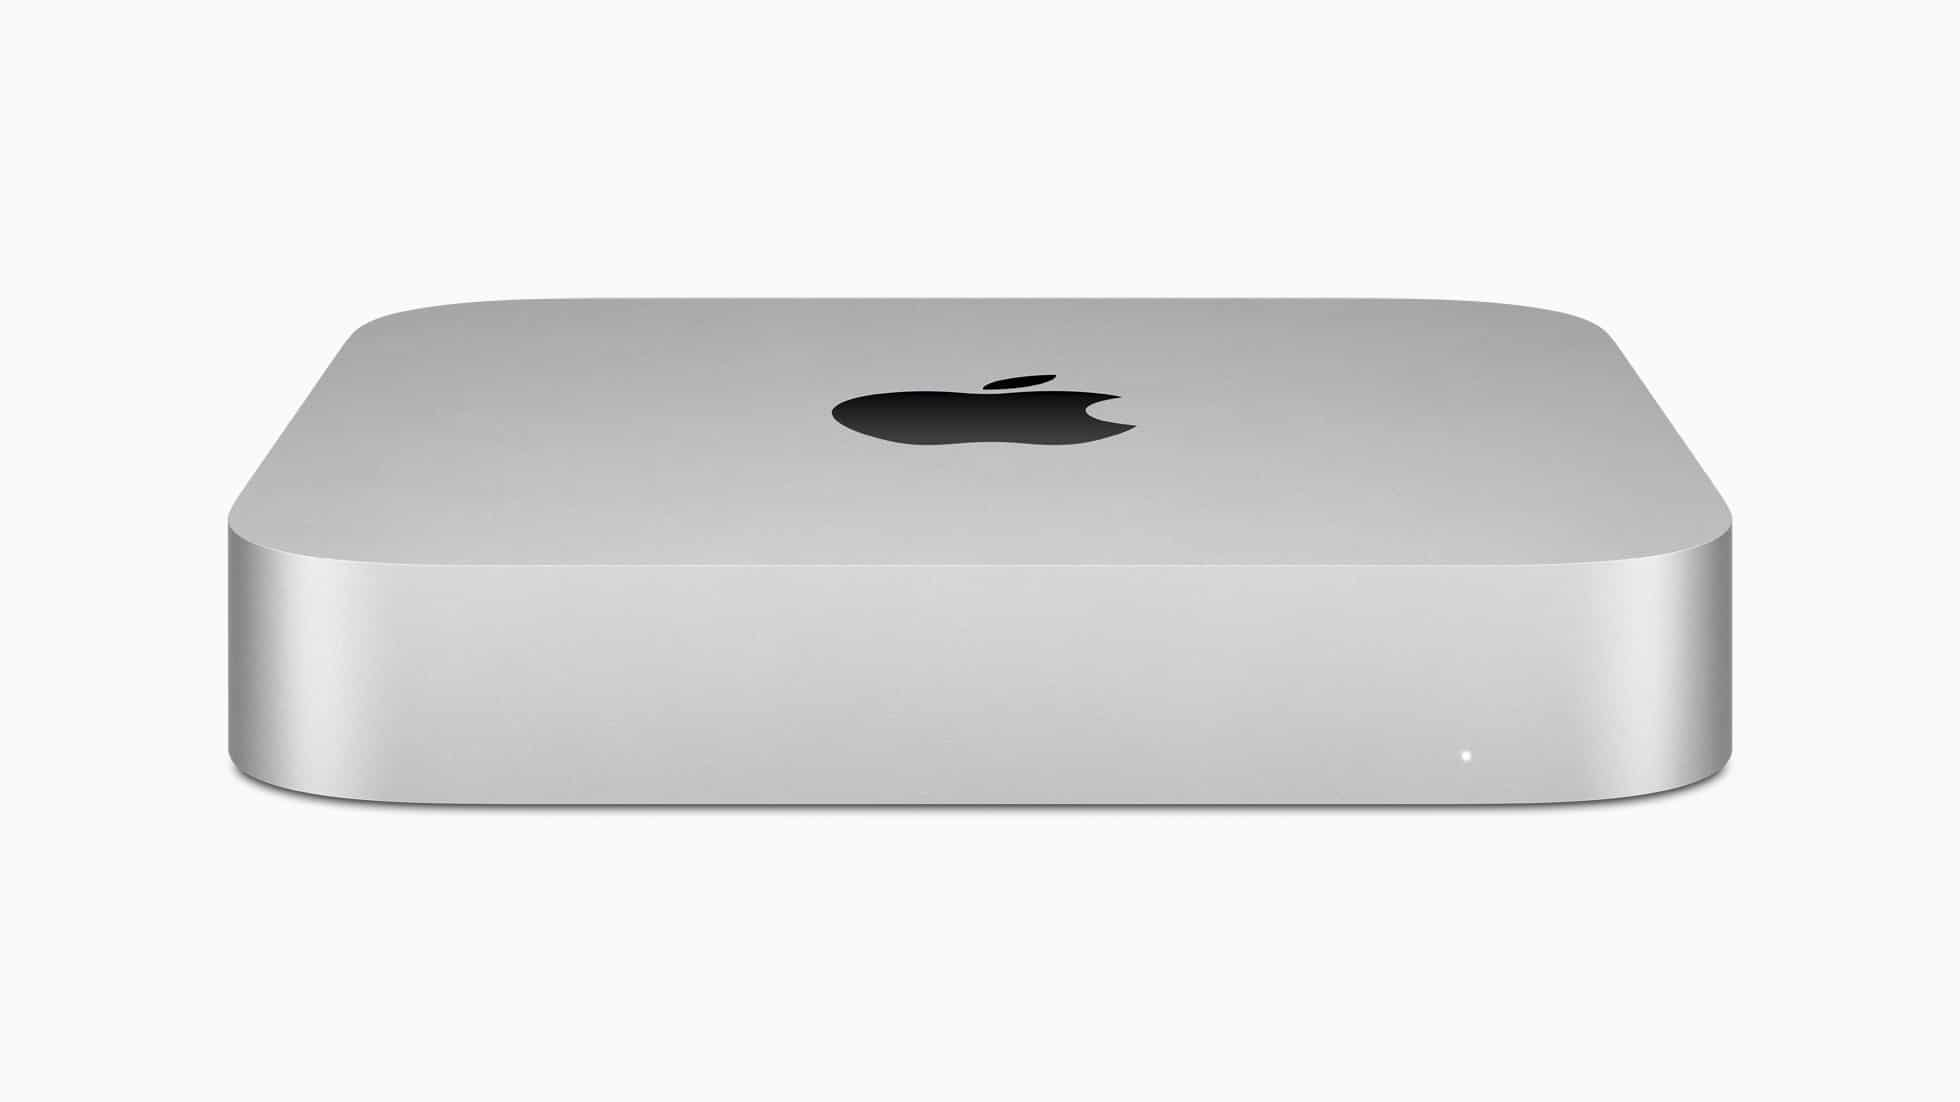 Novo Mac mini com chip Apple M1 na cor prateada de frente